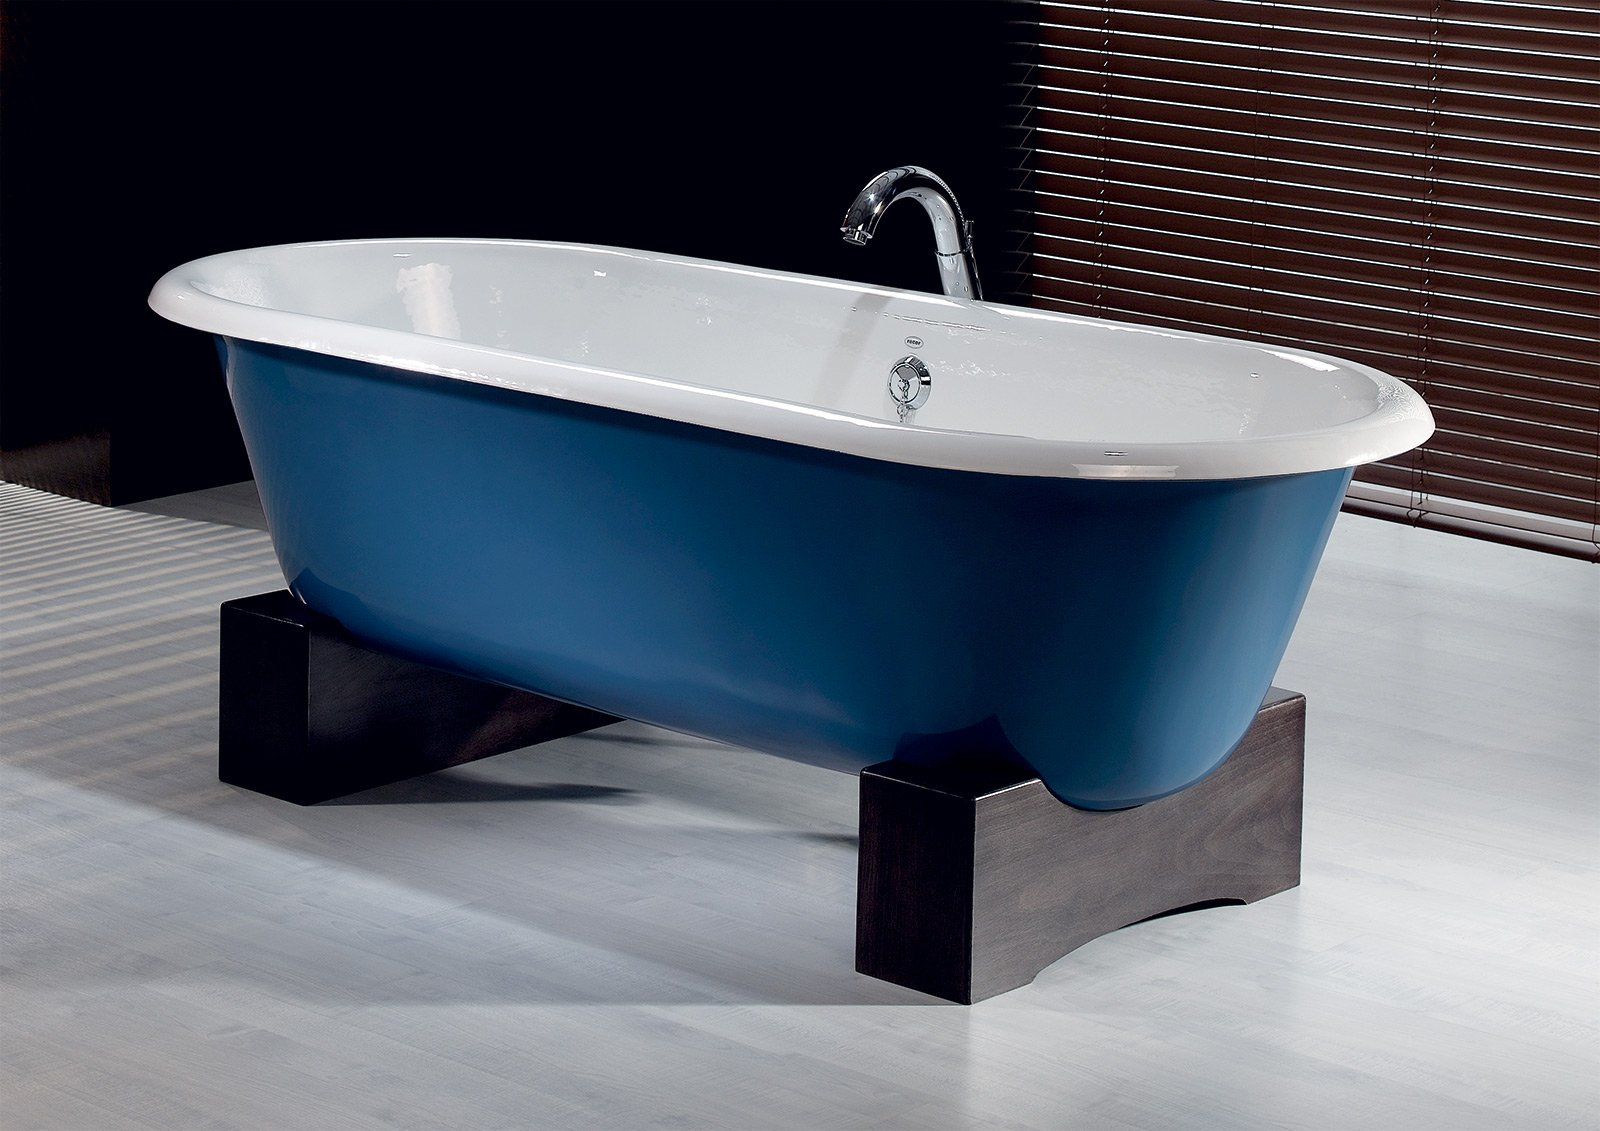 SANDRINGHAM Cast Iron Bathtub with Burnished Exterior - Cheviot Products